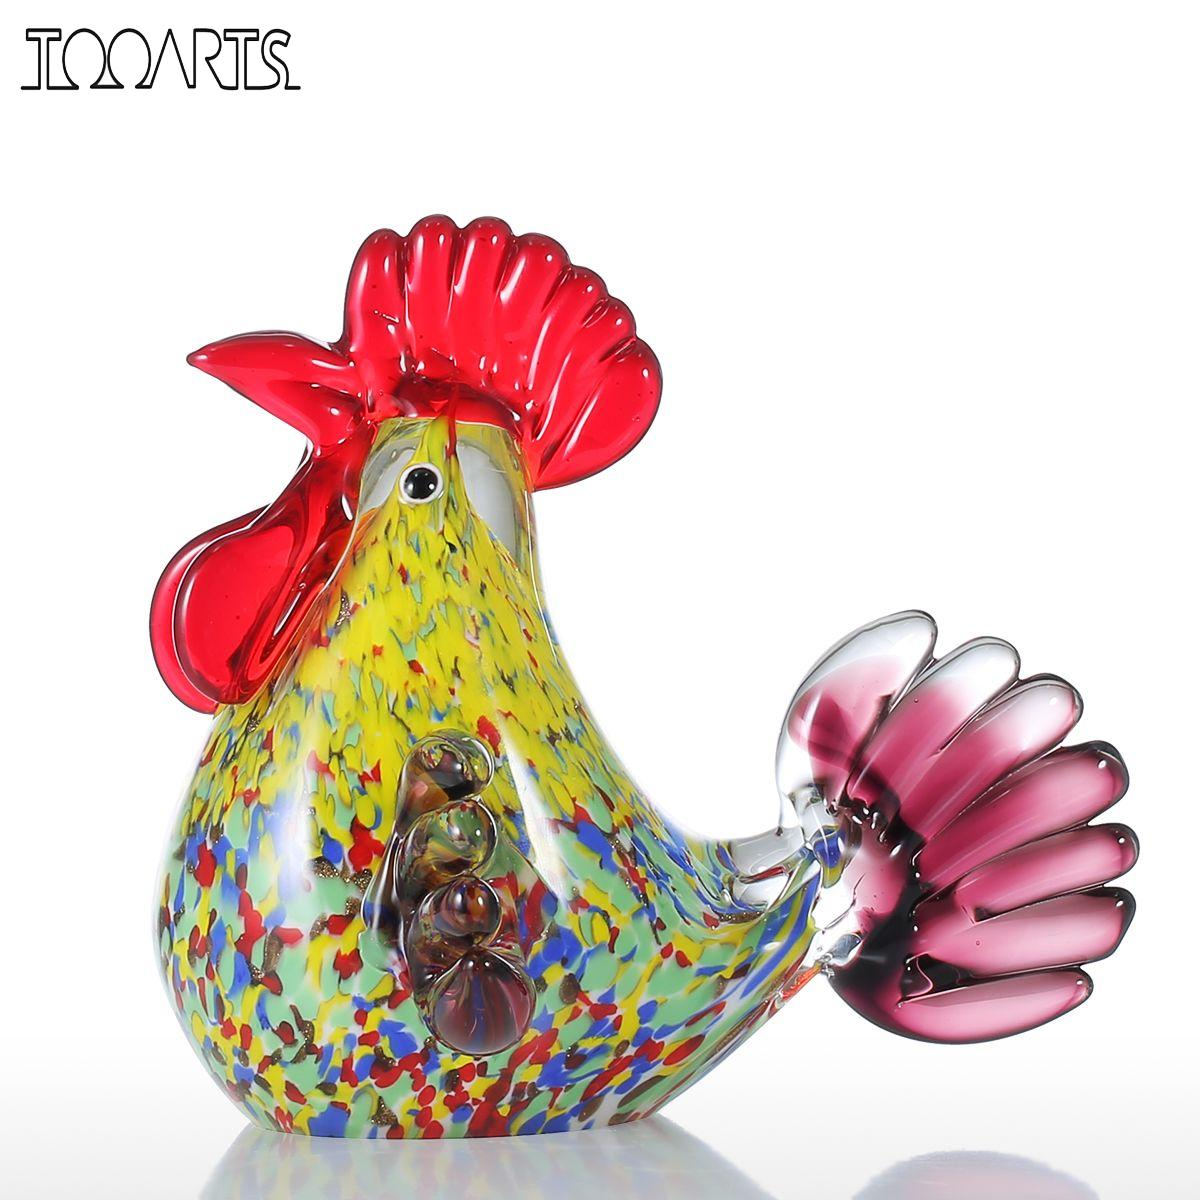 Tooarts Multicolor Rooster Figurine Glass Miniature Figurine Home Decor Animal Ornament Gift Glass Handicraft For Home Garden(China (Mainland))